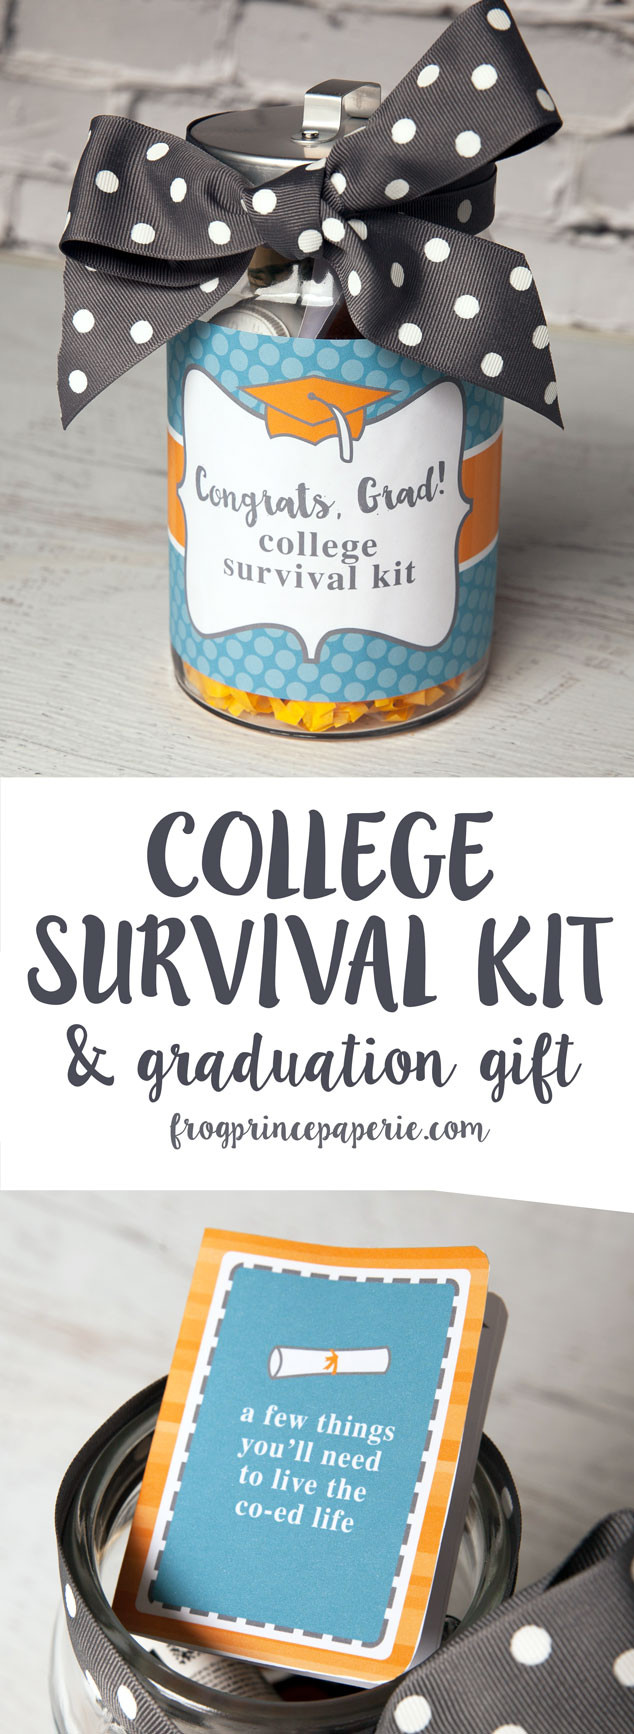 Best ideas about DIY College Survival Kit . Save or Pin College Survival Kit DIY Graduation Gift Frog Prince Paperie Now.